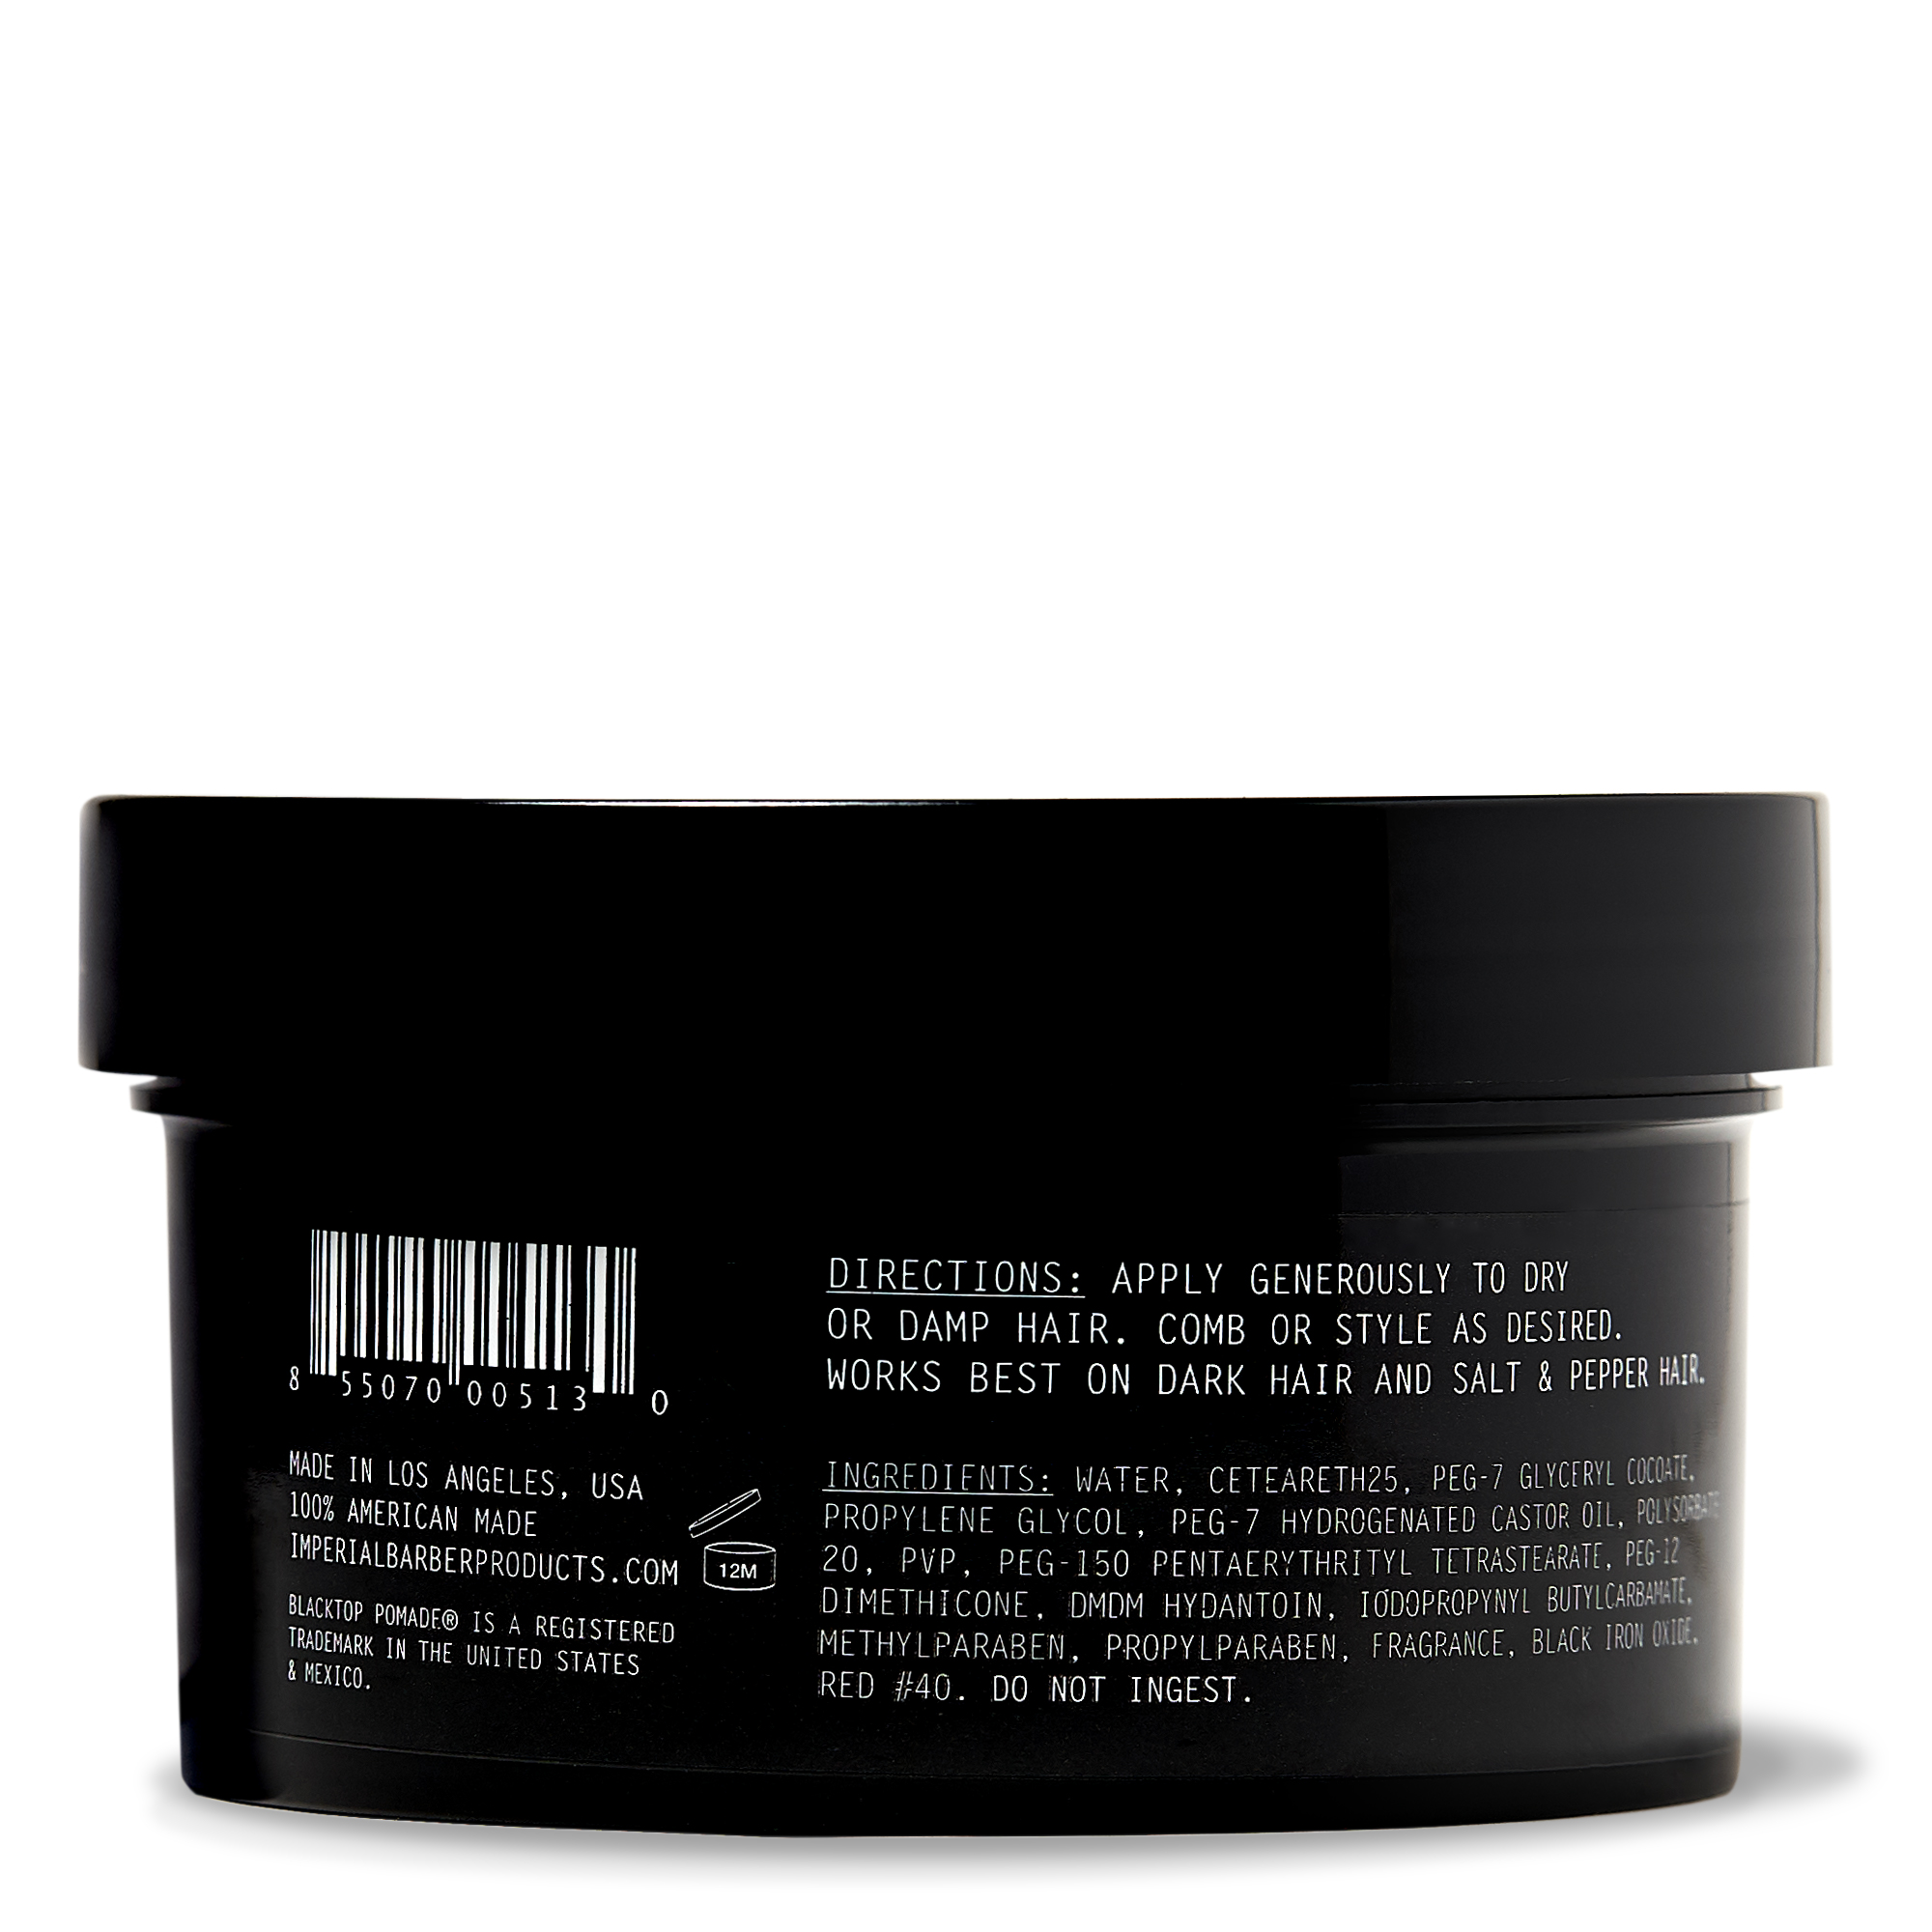 BLACKTOP POMADE (6 OZ) - BACK